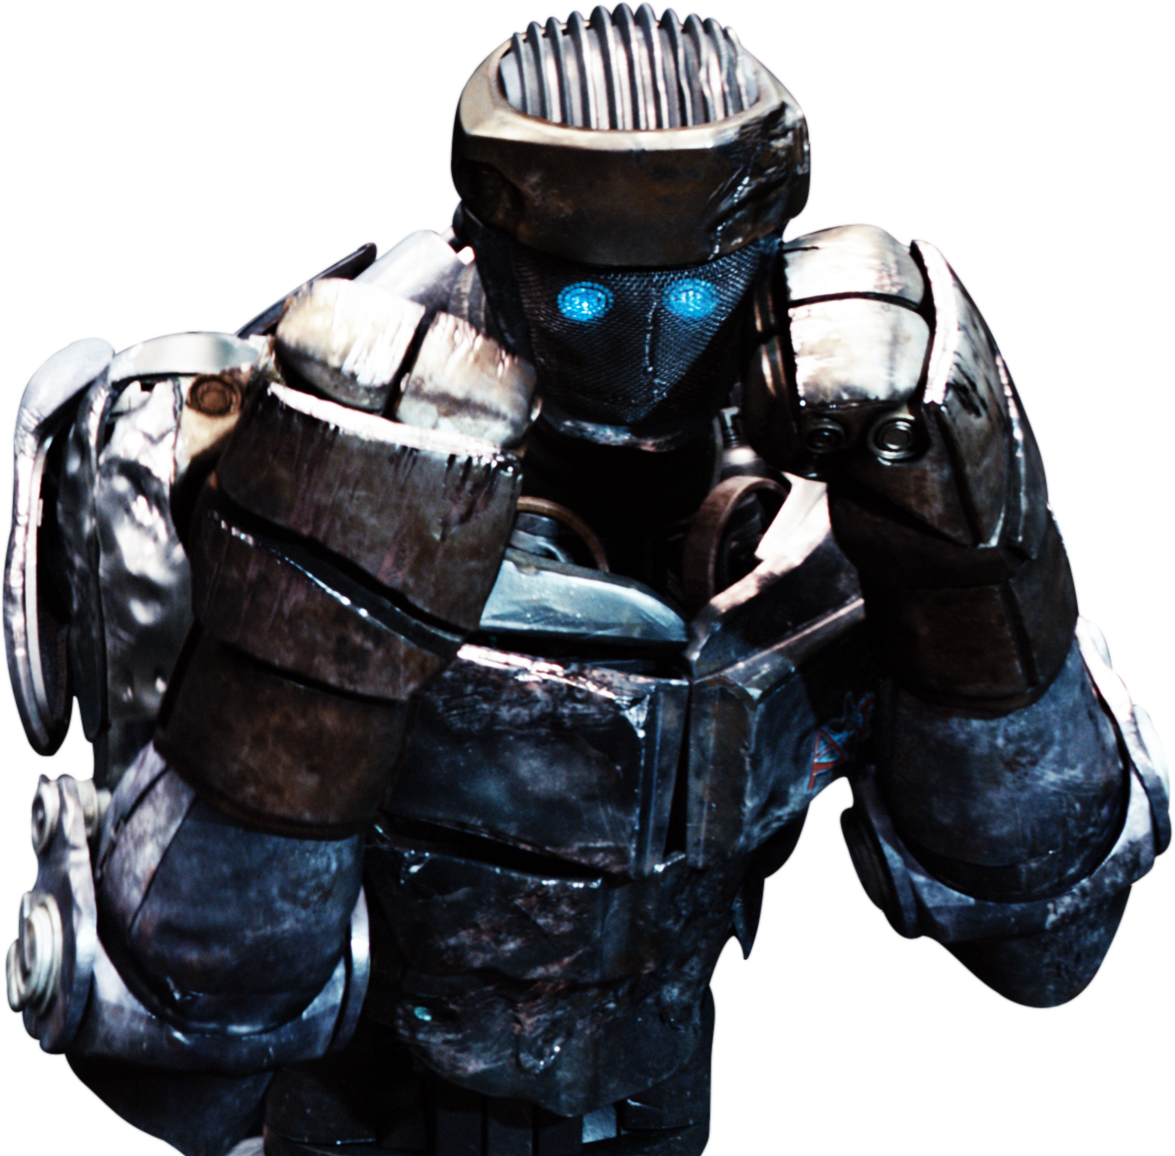 Image - Img-2208965-1-Atom Real Steel Boxer.png | Real ...